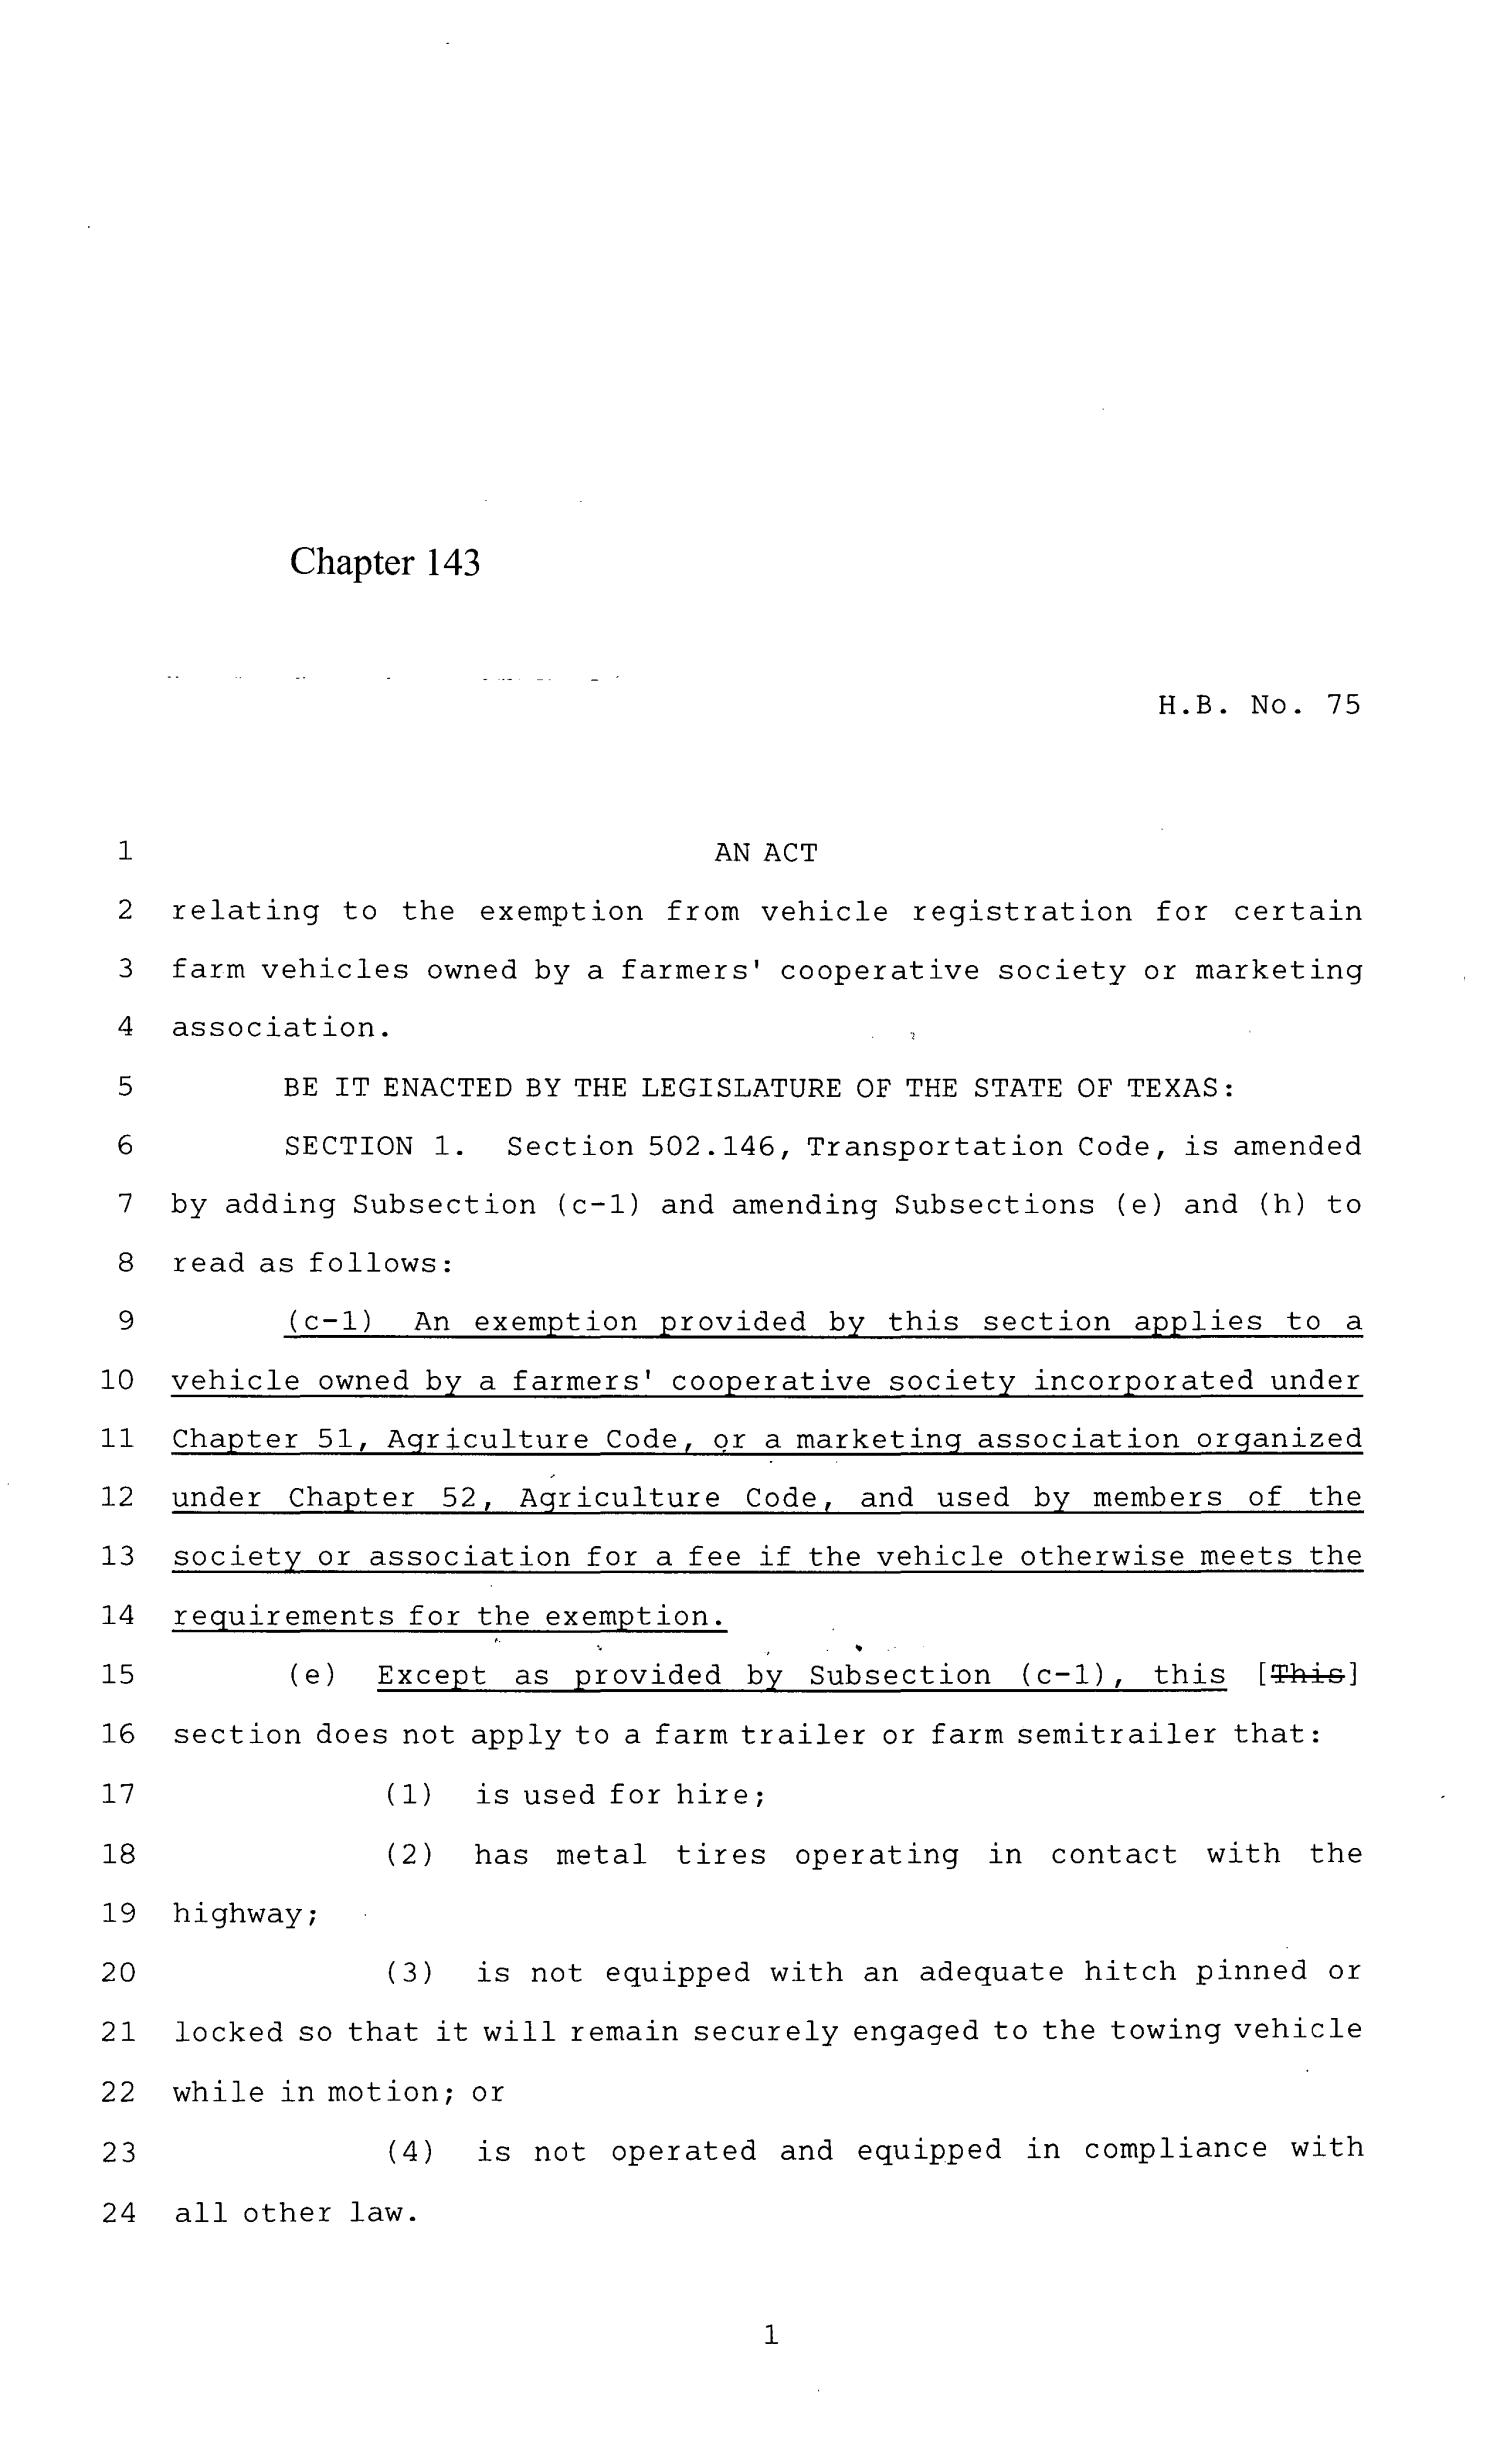 84th Texas Legislature, Regular Session, House Bill 75, Chapter 143                                                                                                      [Sequence #]: 1 of 5